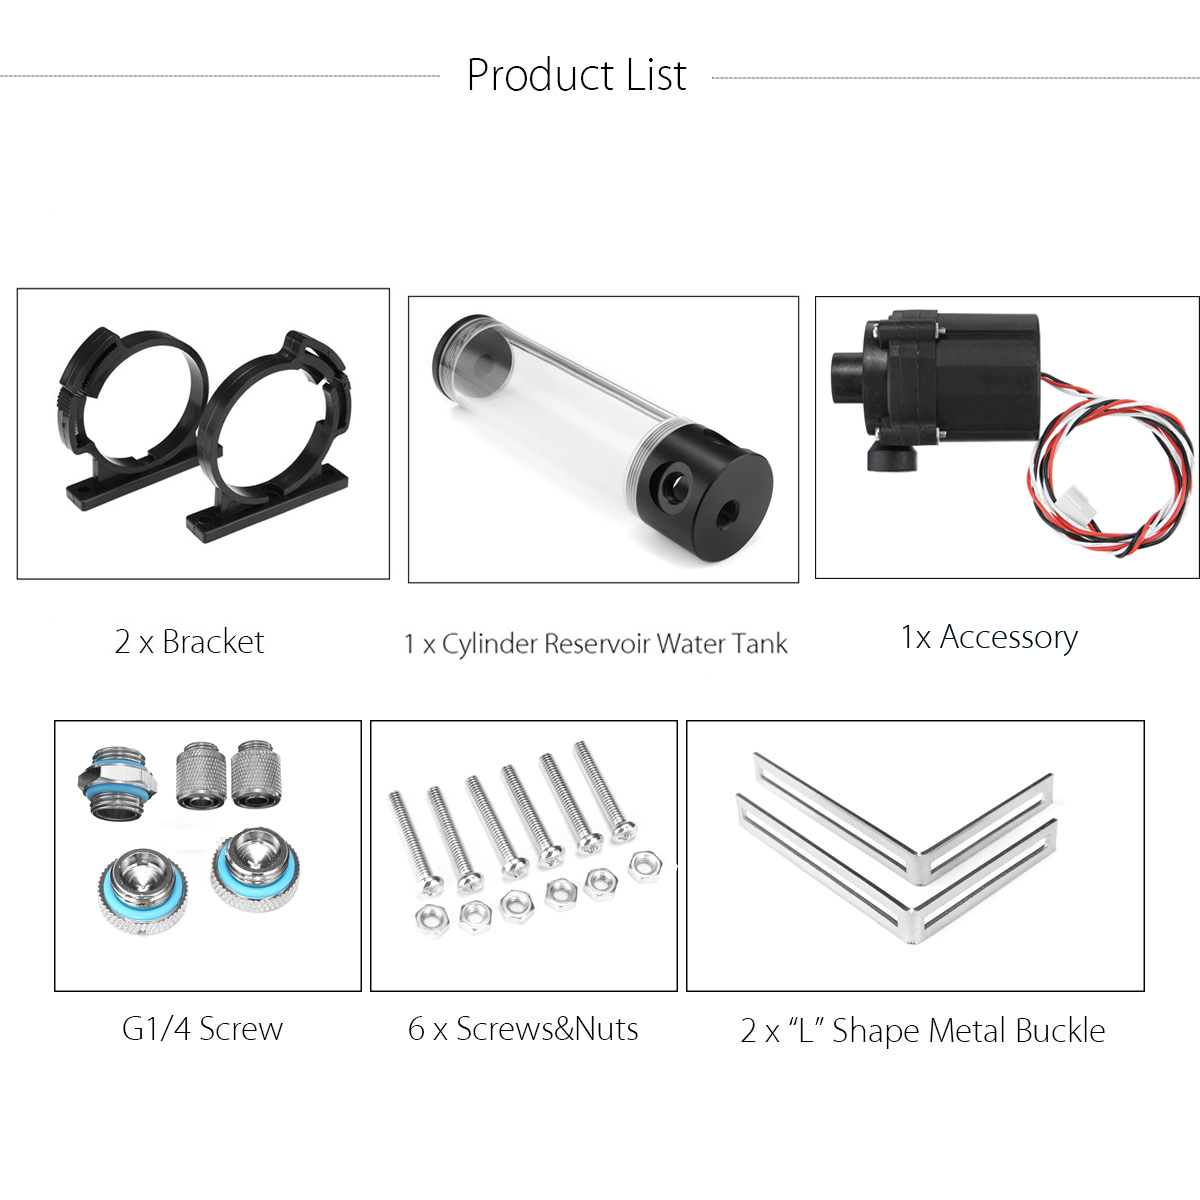 hight resolution of 12v 50mmx310mm cylinder water tank g1 4 thread 19w pump computer water cooling radiator